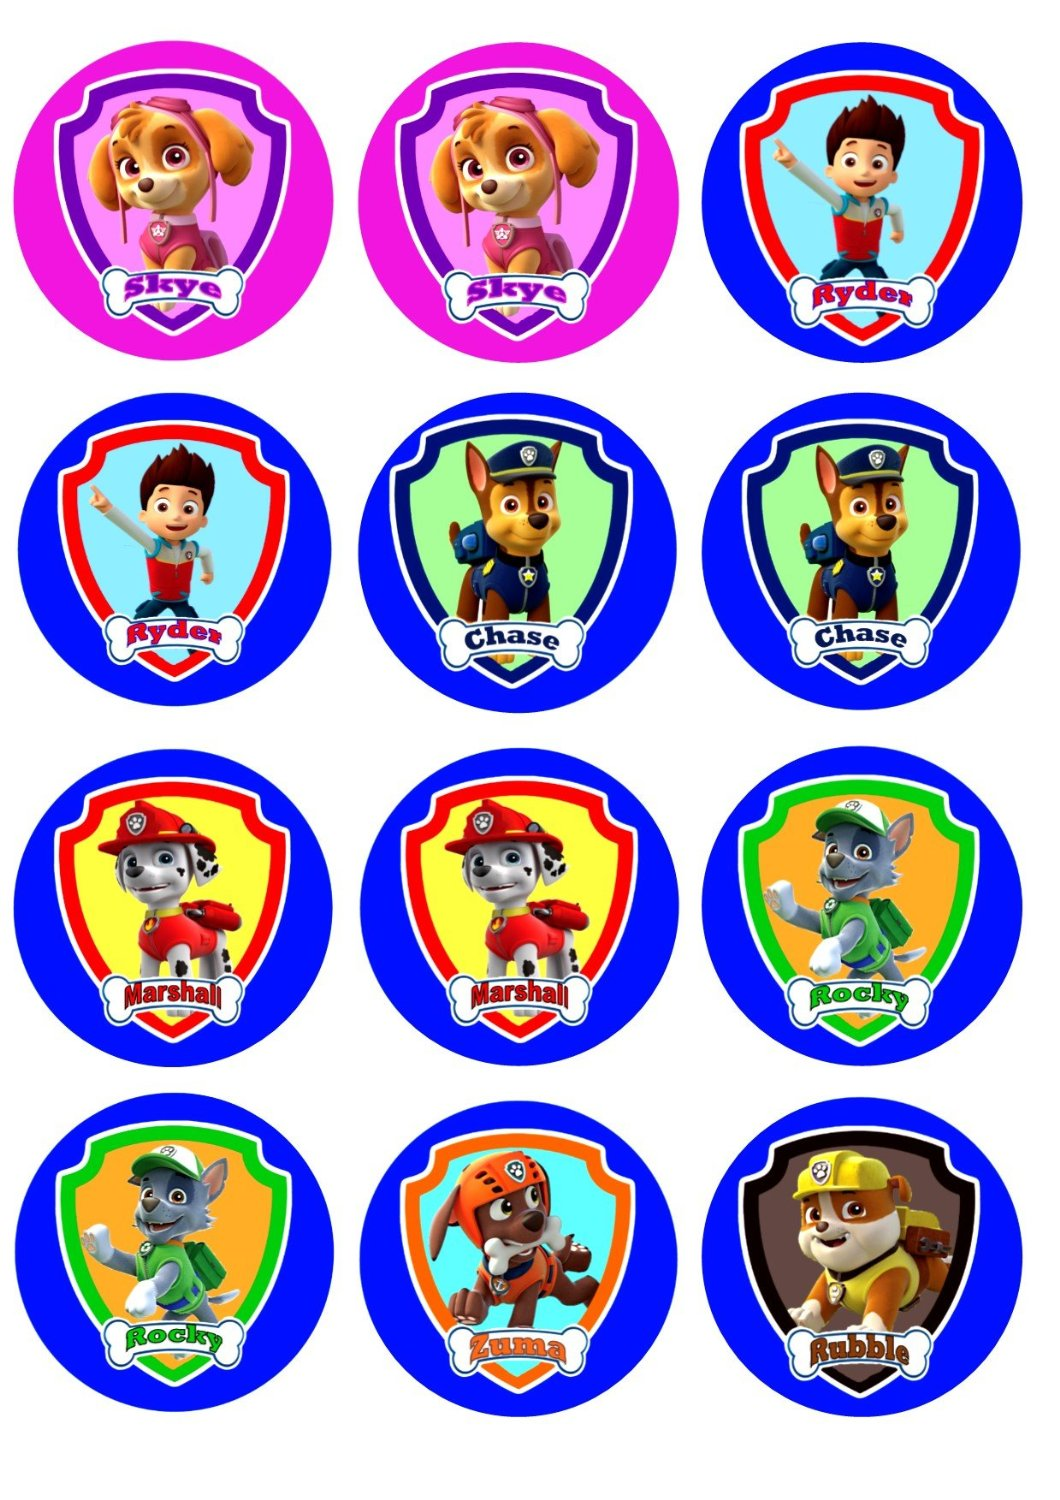 Paw Patrol Free Printable Kit  Oh My Fiesta! In English. Profit And Loss Excel Template. Soap Progress Notes Template. Paw Patrol Digital Invitations. Free Blank Bookmark Template. Excel Employee Schedule Template. California Birth Certificate Template. Post Graduate Diploma In Actuarial Science. Graduation Program Design